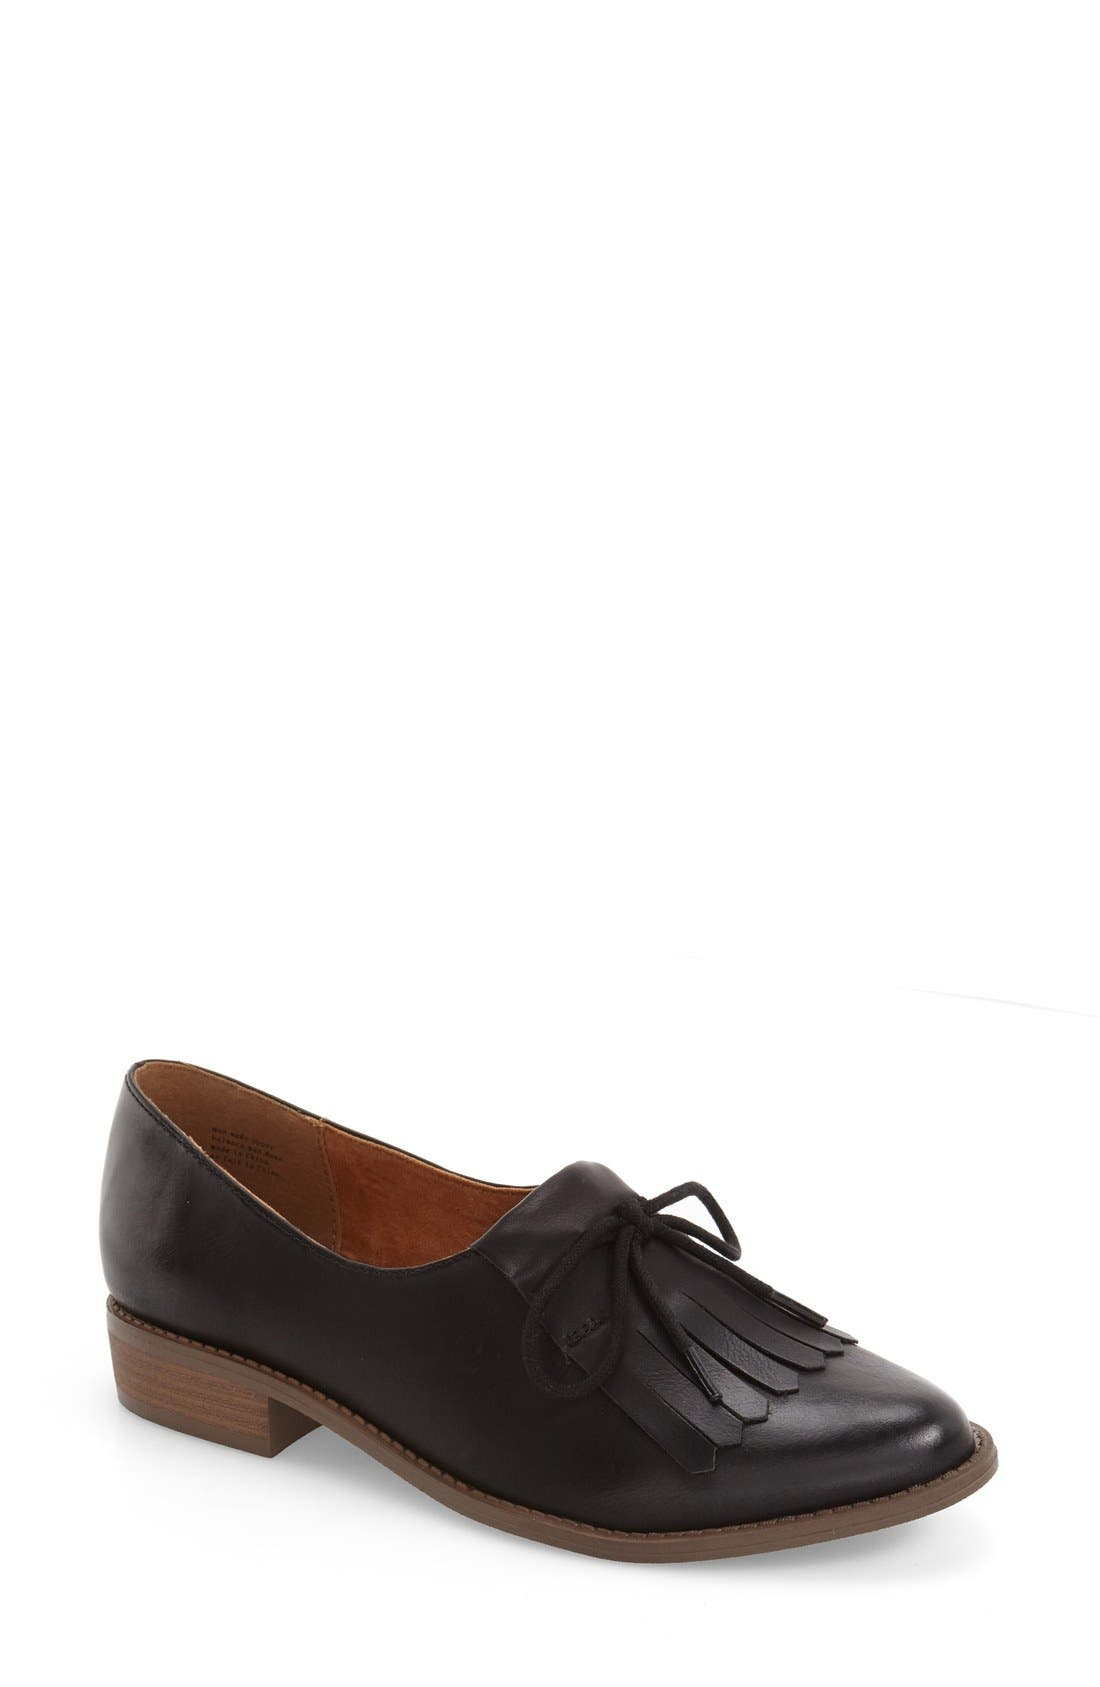 Main Image - BC Footwear 'Flash' Kiltie Flap Oxford (Women)